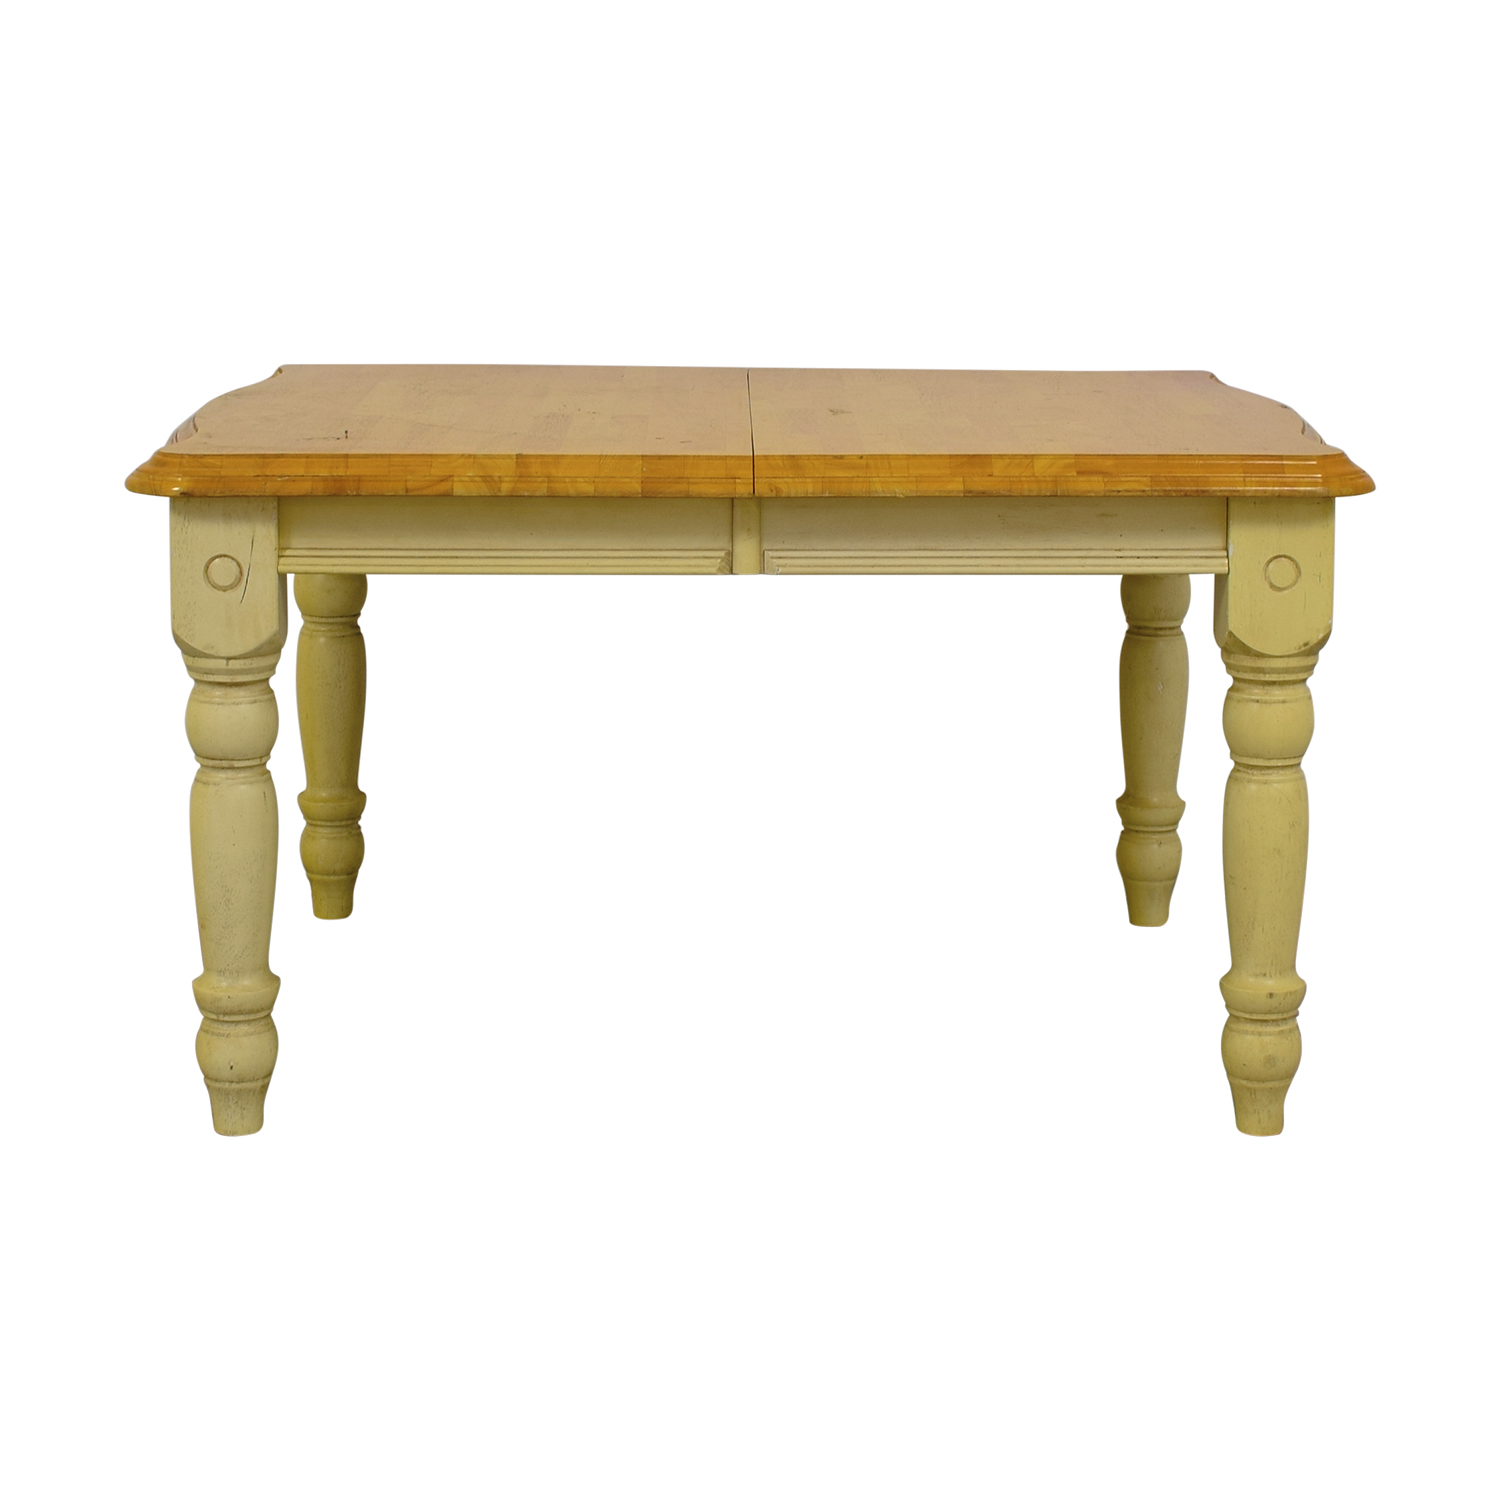 Limahsoon Limahsoon Cream Distressed Wood Top Dining Table used